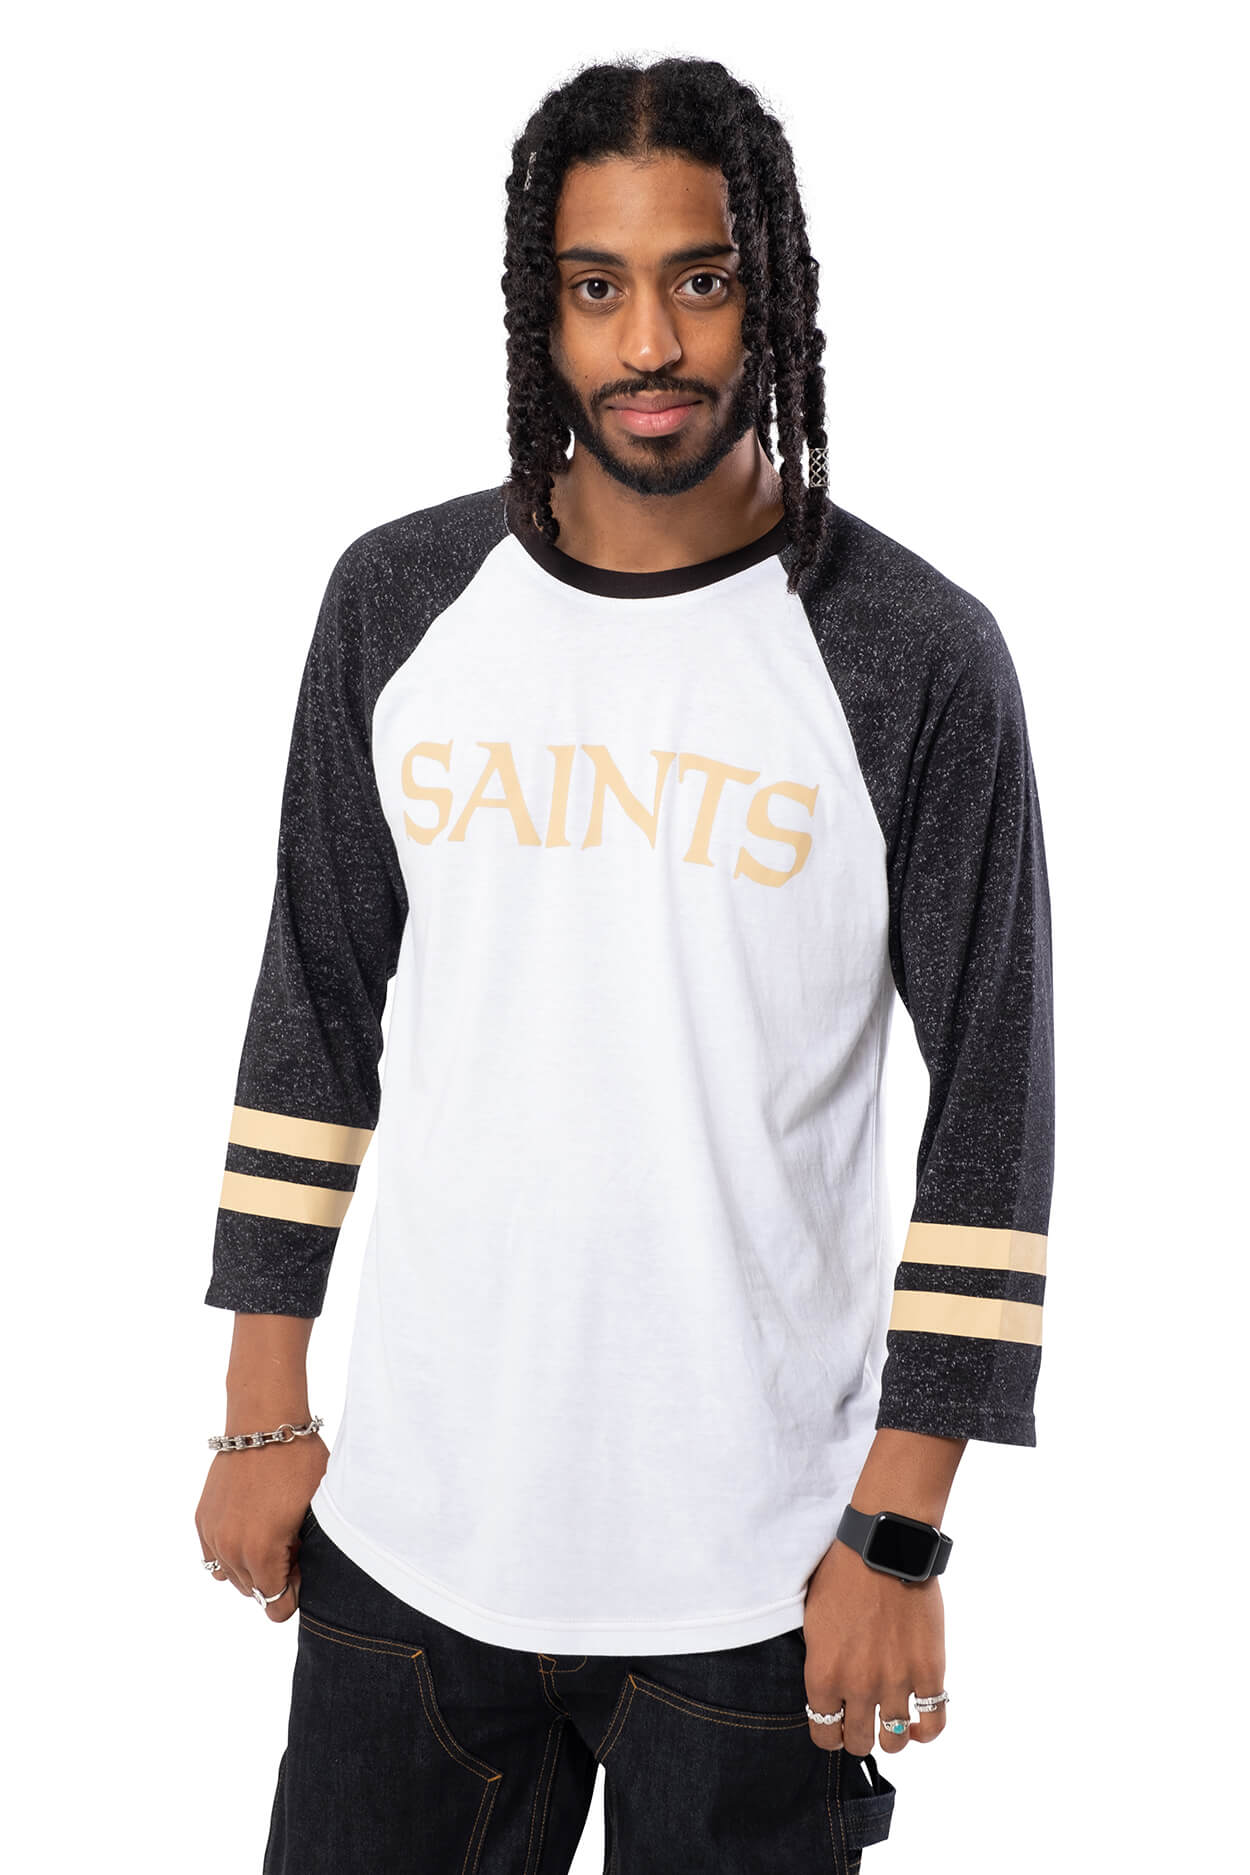 NFL New Orleans Saints Men's Baseball Tee|New Orleans Saints